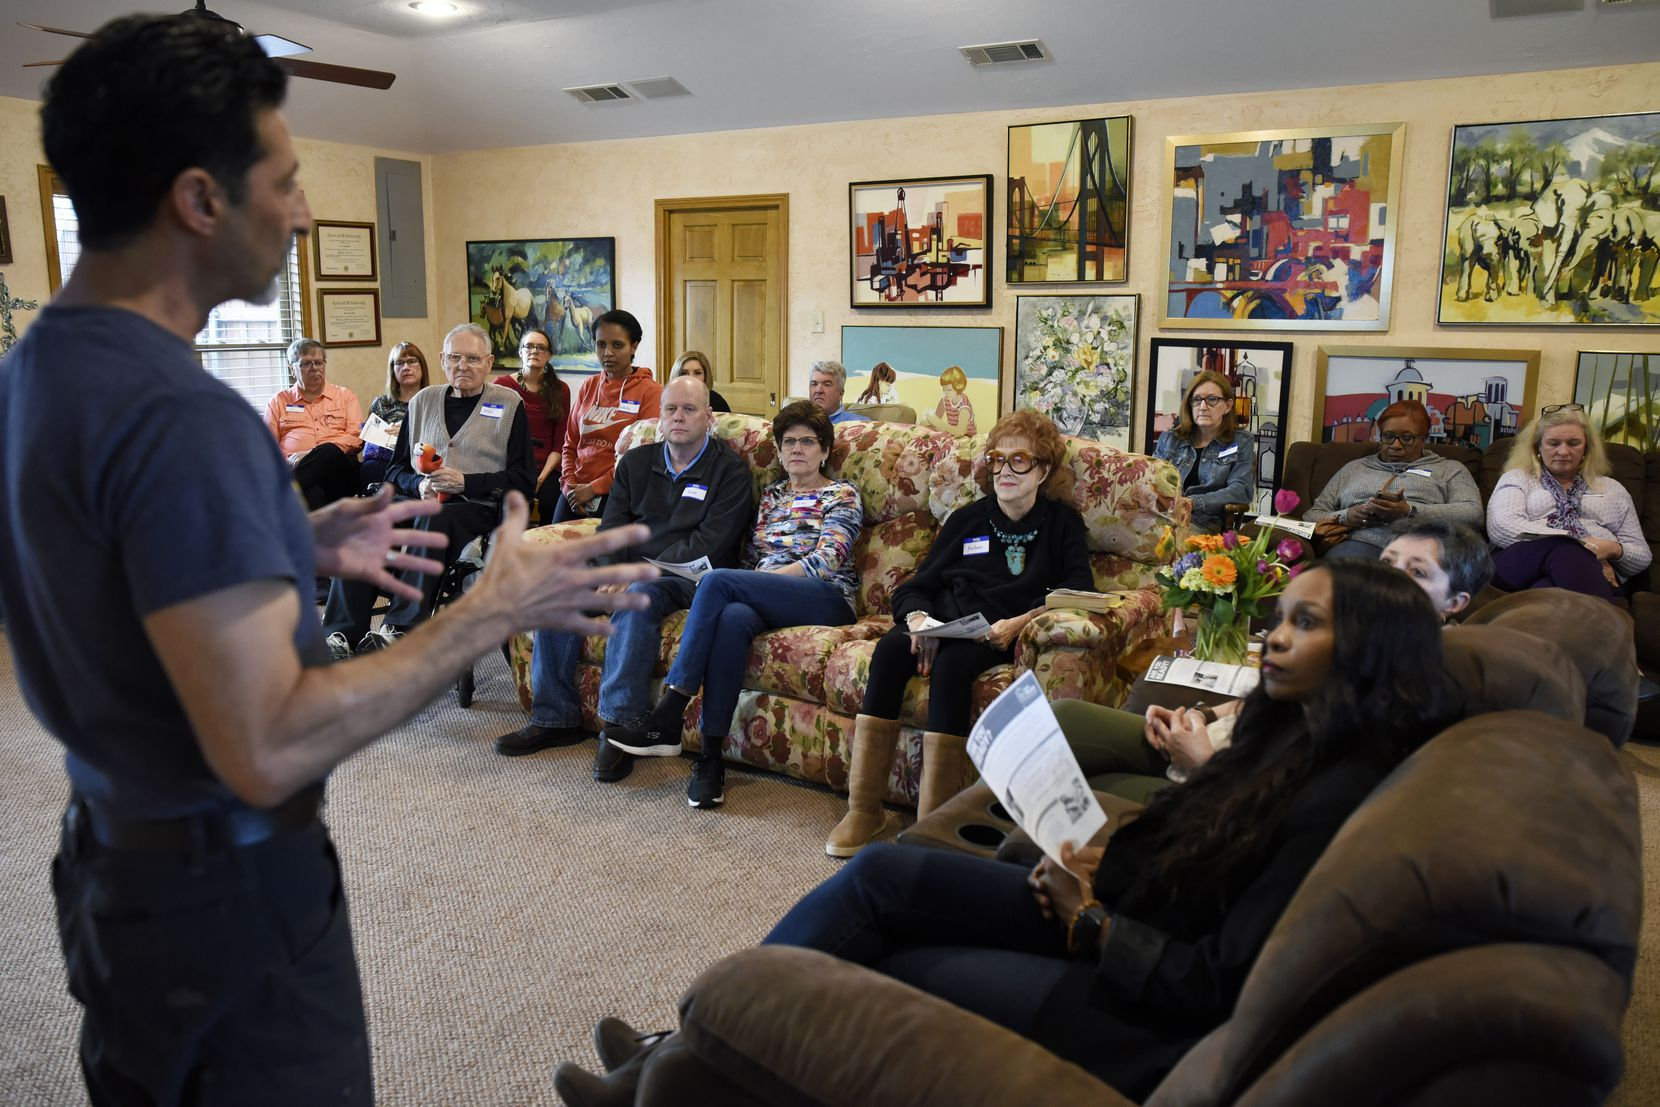 Two dozen guests gathered at the Doyle home to hear vascular surgeon Dr. Rizwan H. Bukhari speak about the link between diet and health. The event was earlier this year, before social distancing rules.